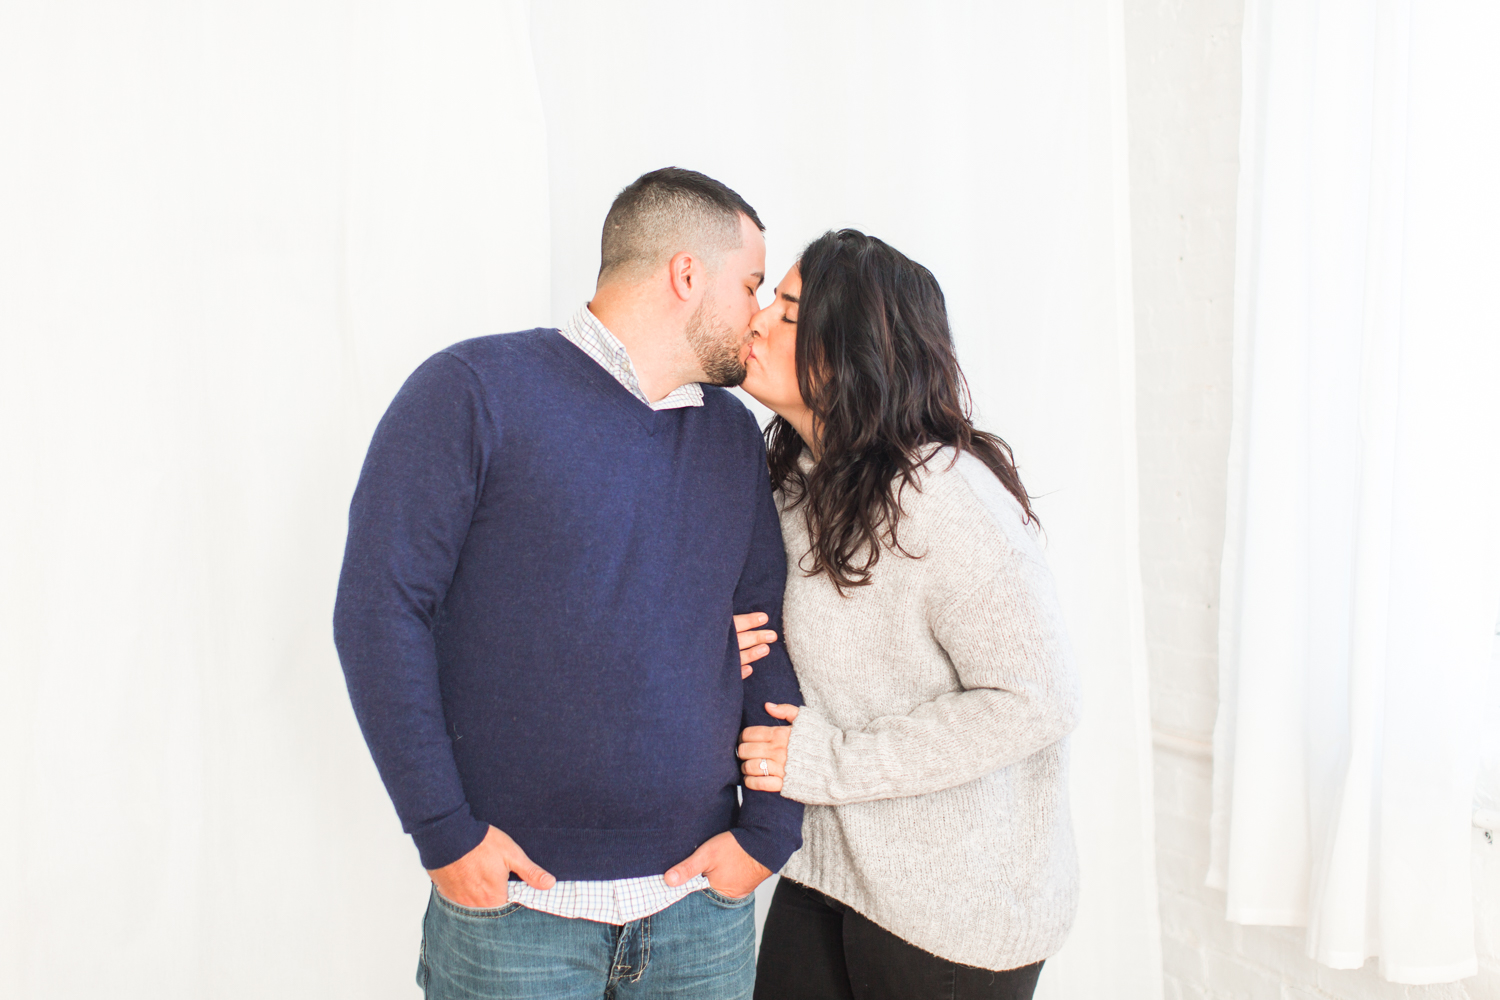 connecticut-couples-holiday-card-photographer-wedding-engagement-anniversary-photography-shaina-lee-photo-1.jpg